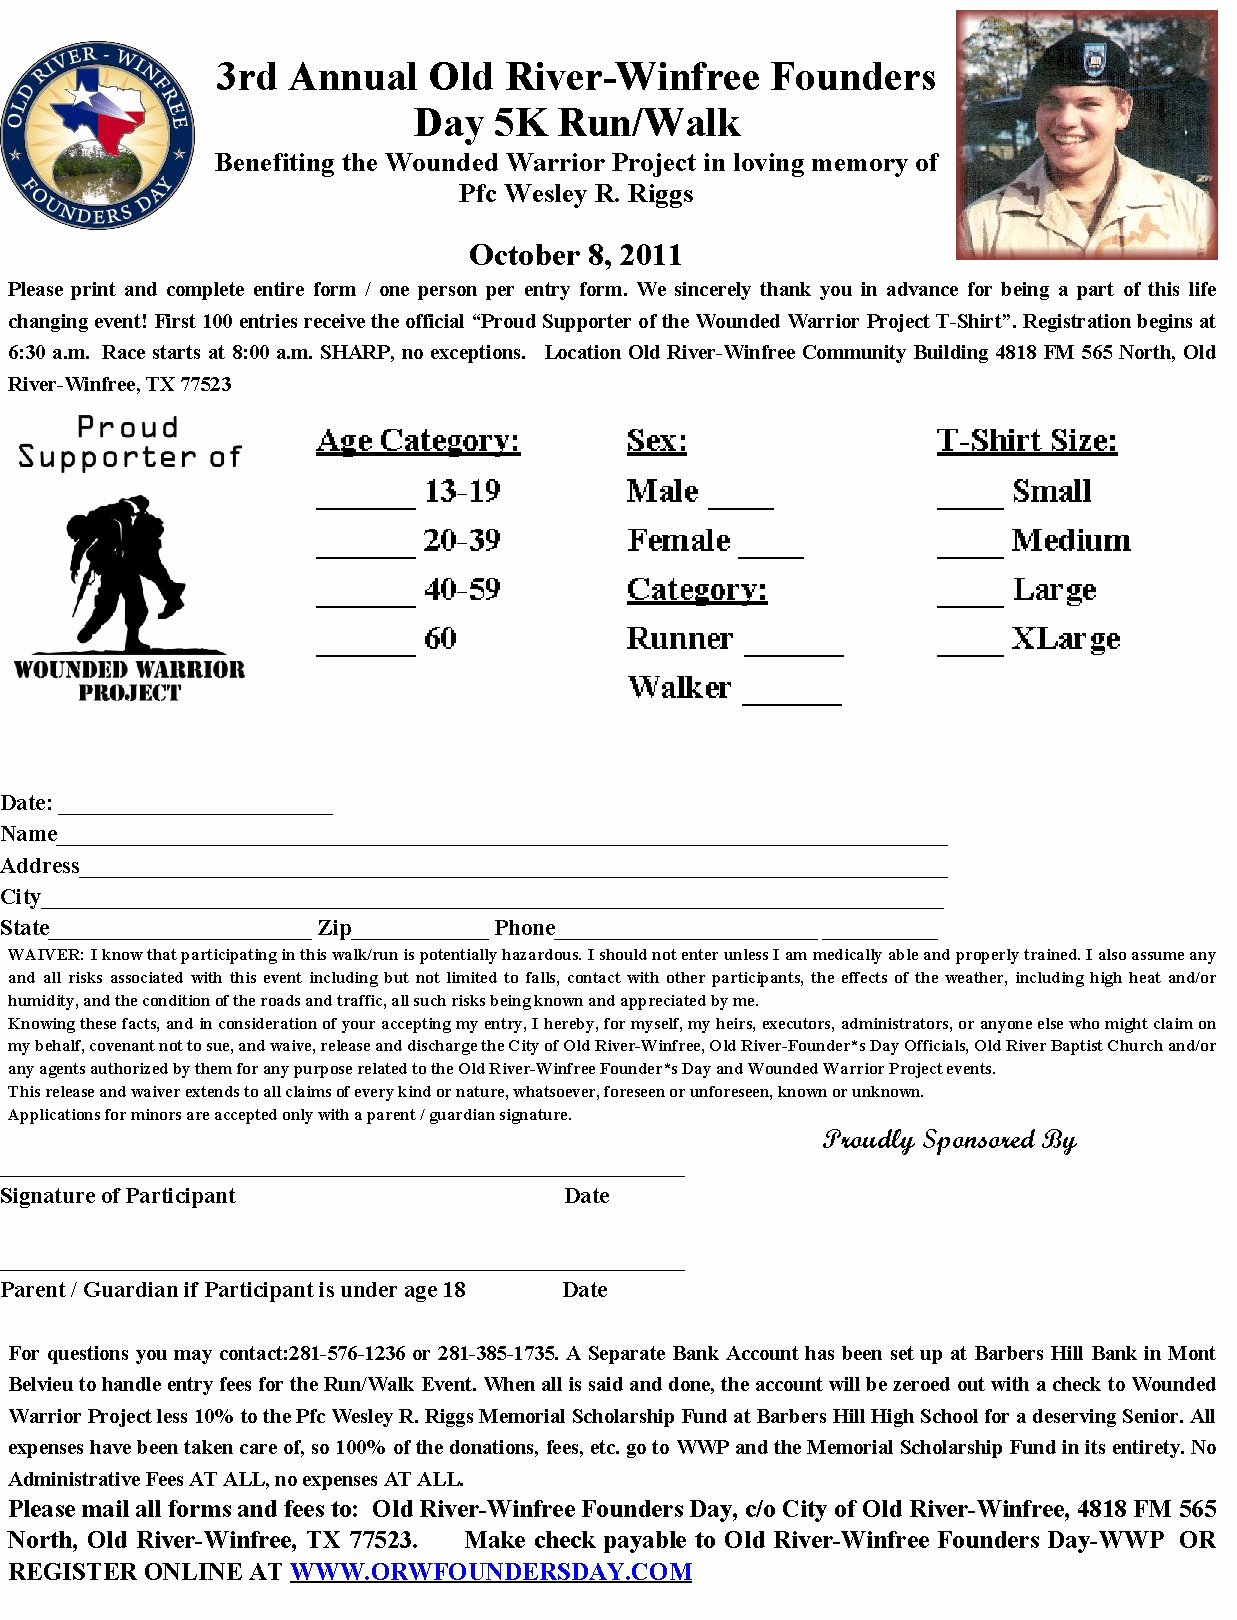 5k Registration form Template New Barbers Hill Scholarship Fund